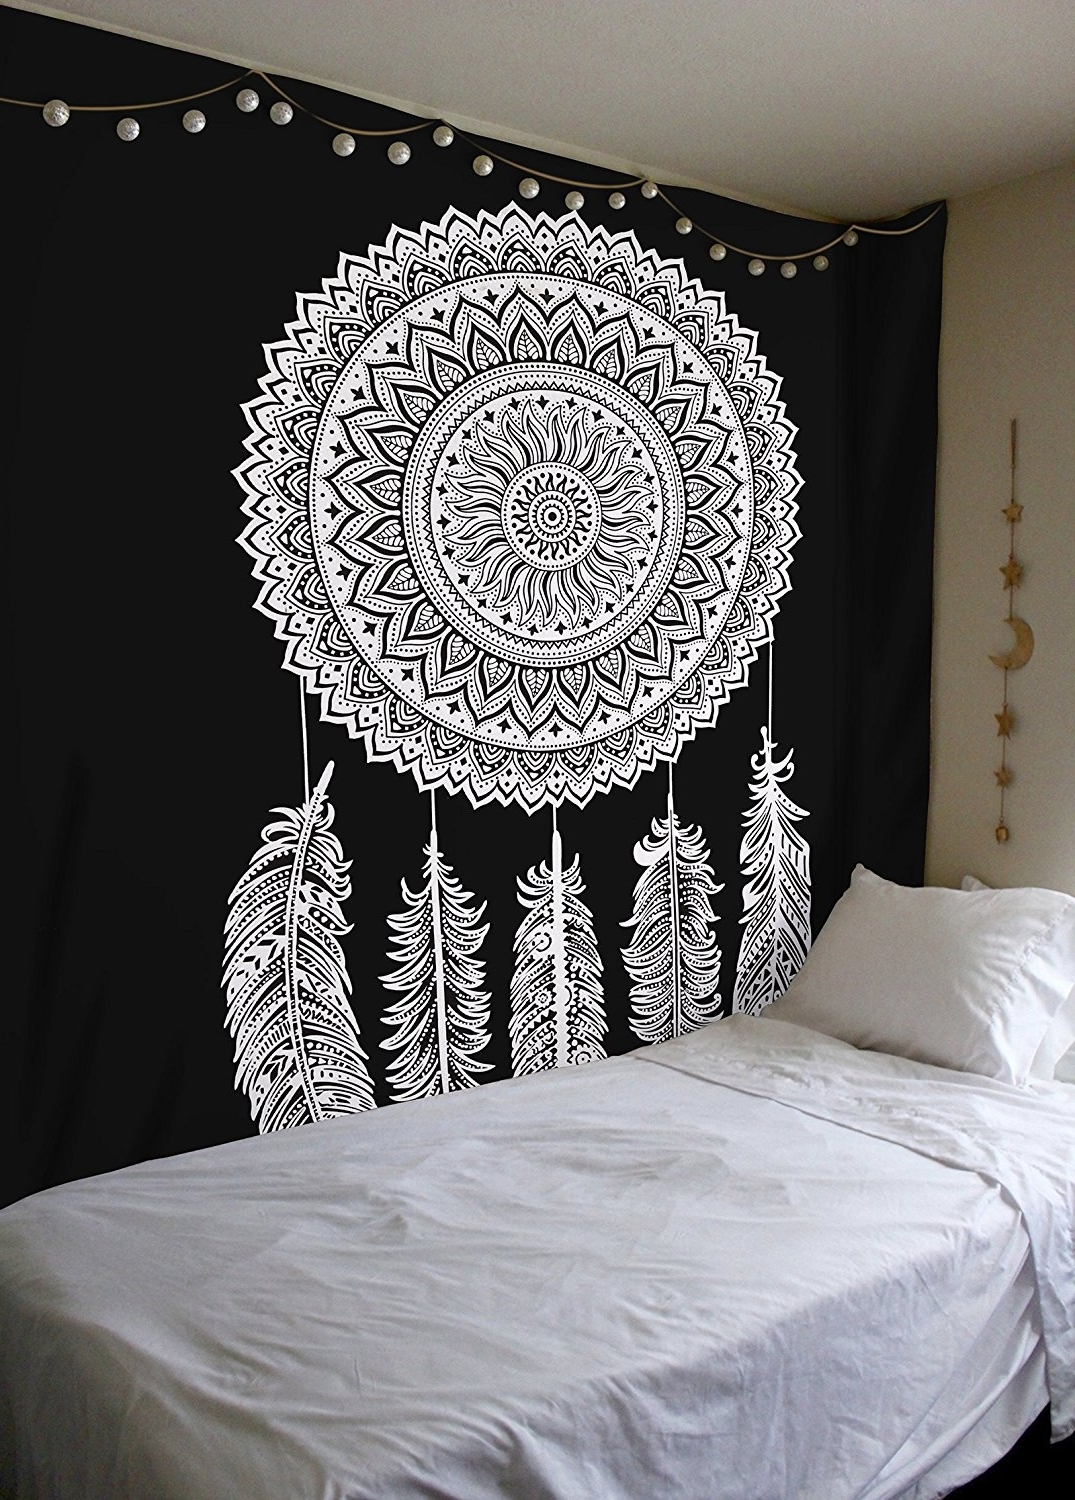 Dreamcatcher Fabric Wall Art Intended For Well Known Amazon: Black And White Tapestry, Dreamcatcher Wall Hanging (View 6 of 15)